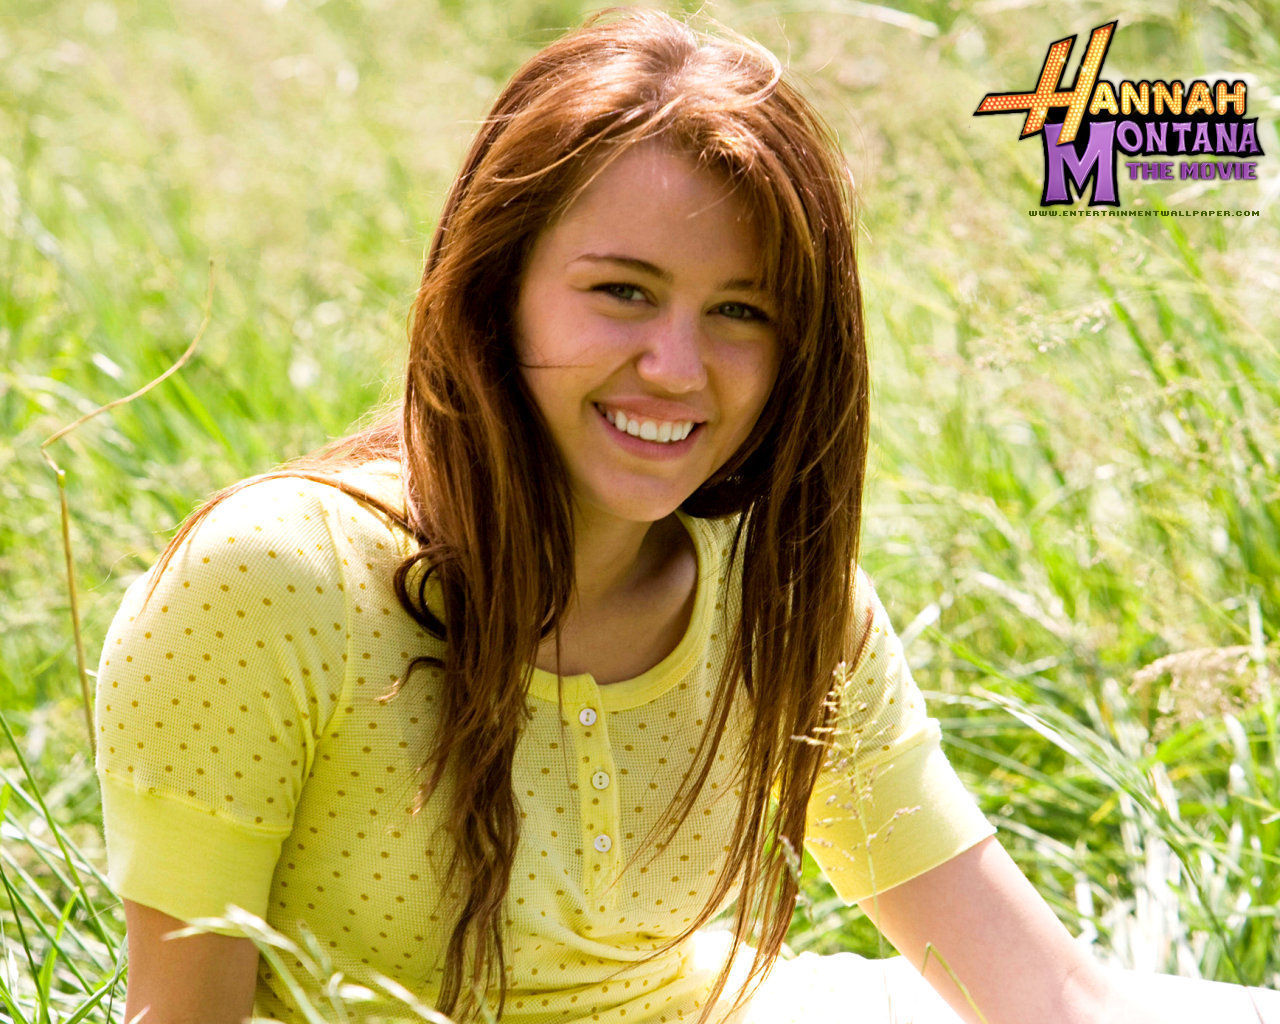 http://images2.fanpop.com/images/photos/5400000/Hannah-Montana-The-Movie-miley-cyrus-5466941-1280-1024.jpg